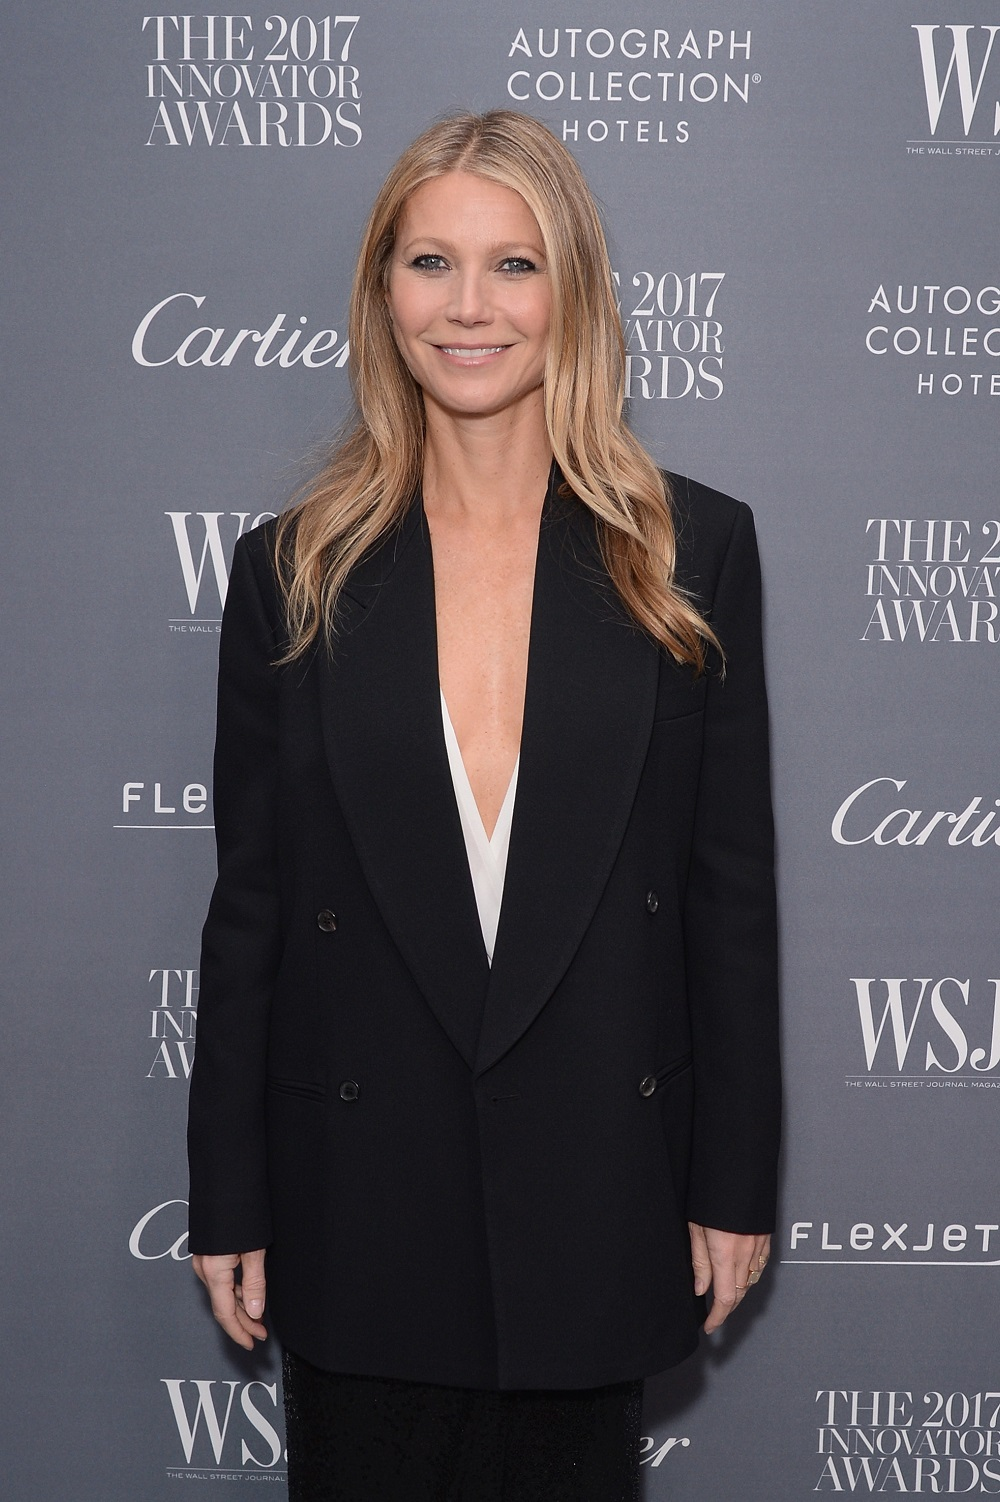 WSJ Magazine innovator awards, gwyneth paltrow